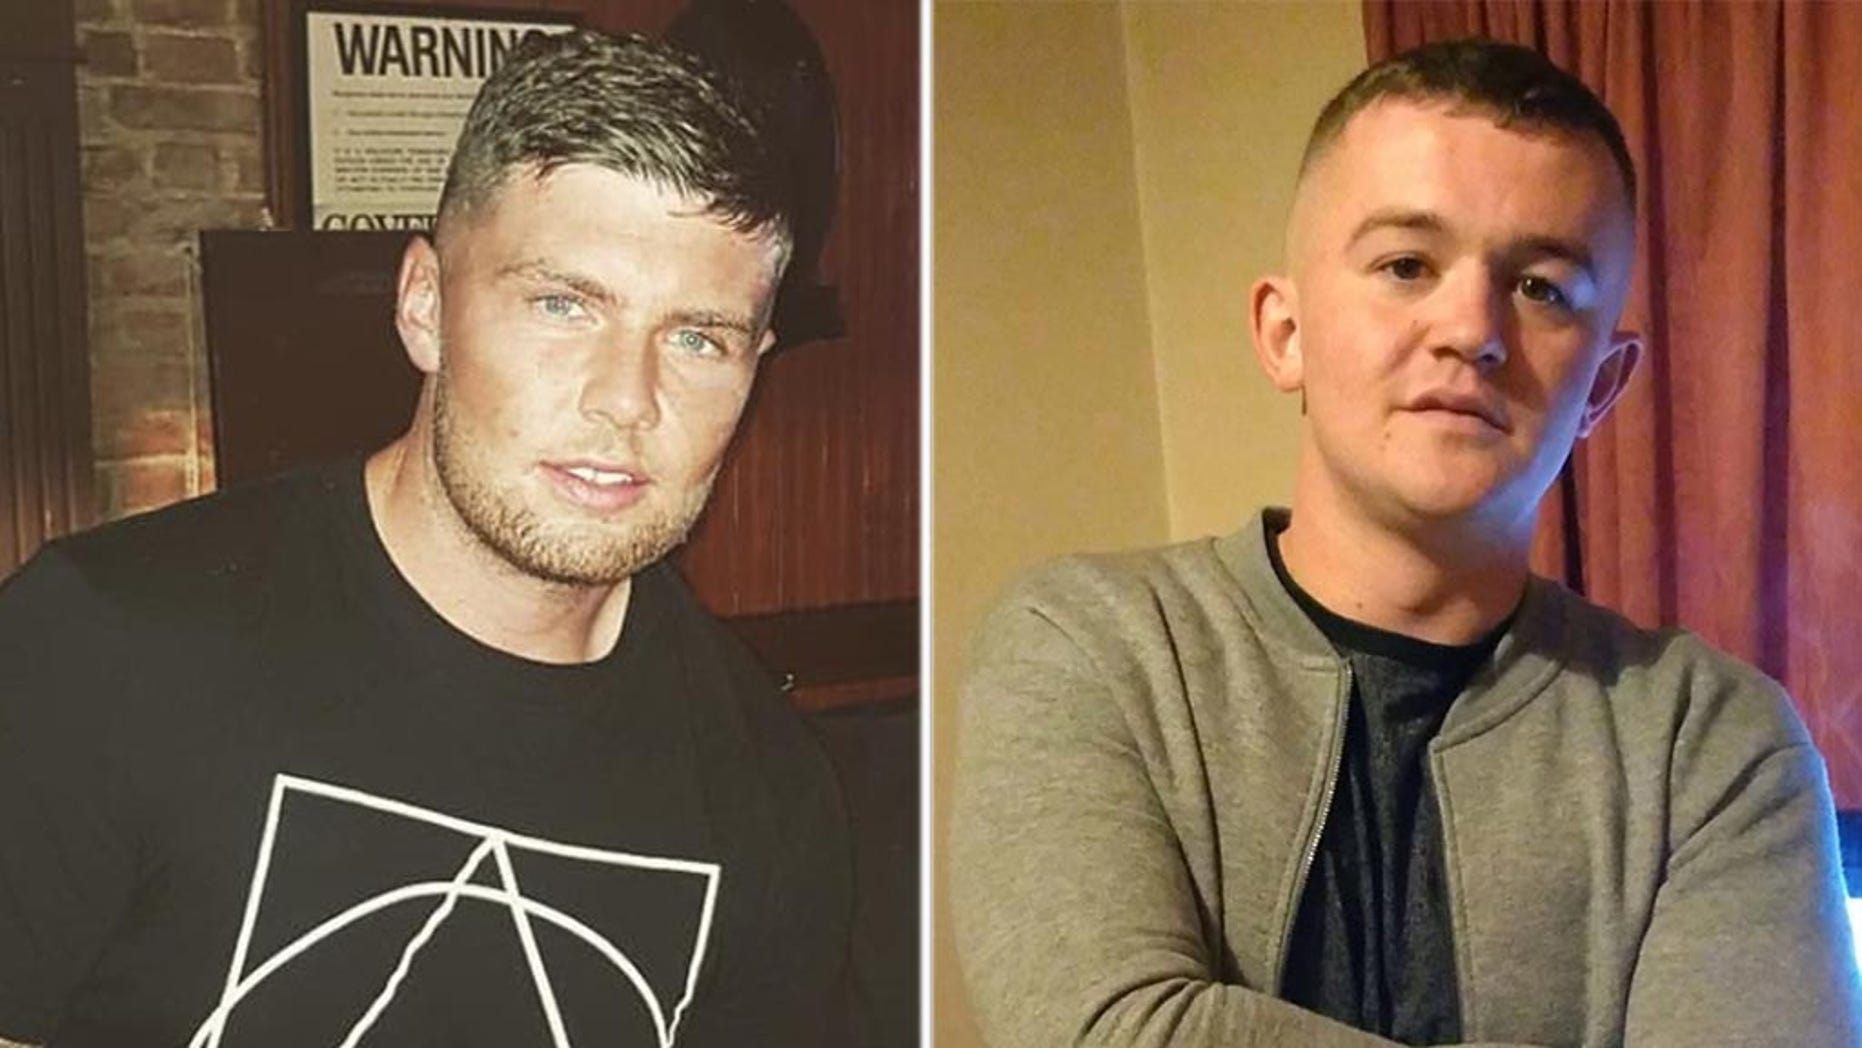 """Steven O'Brien [left] was arrested after he was accused of punching John """"Danny"""" McGee [right] in the head who later died."""